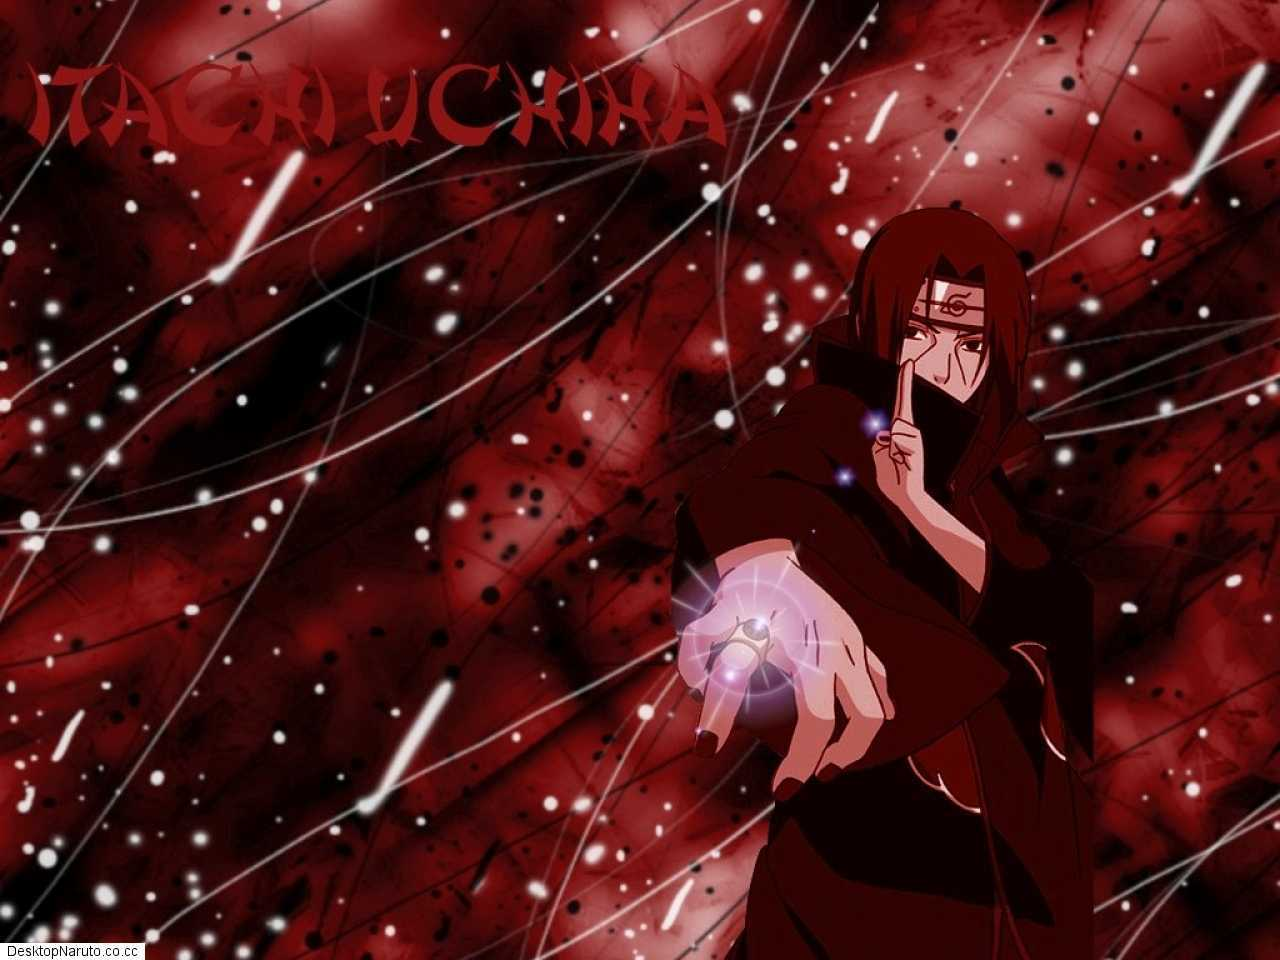 wallpaper for more naruto wallpapers browse our large selection 1280x960